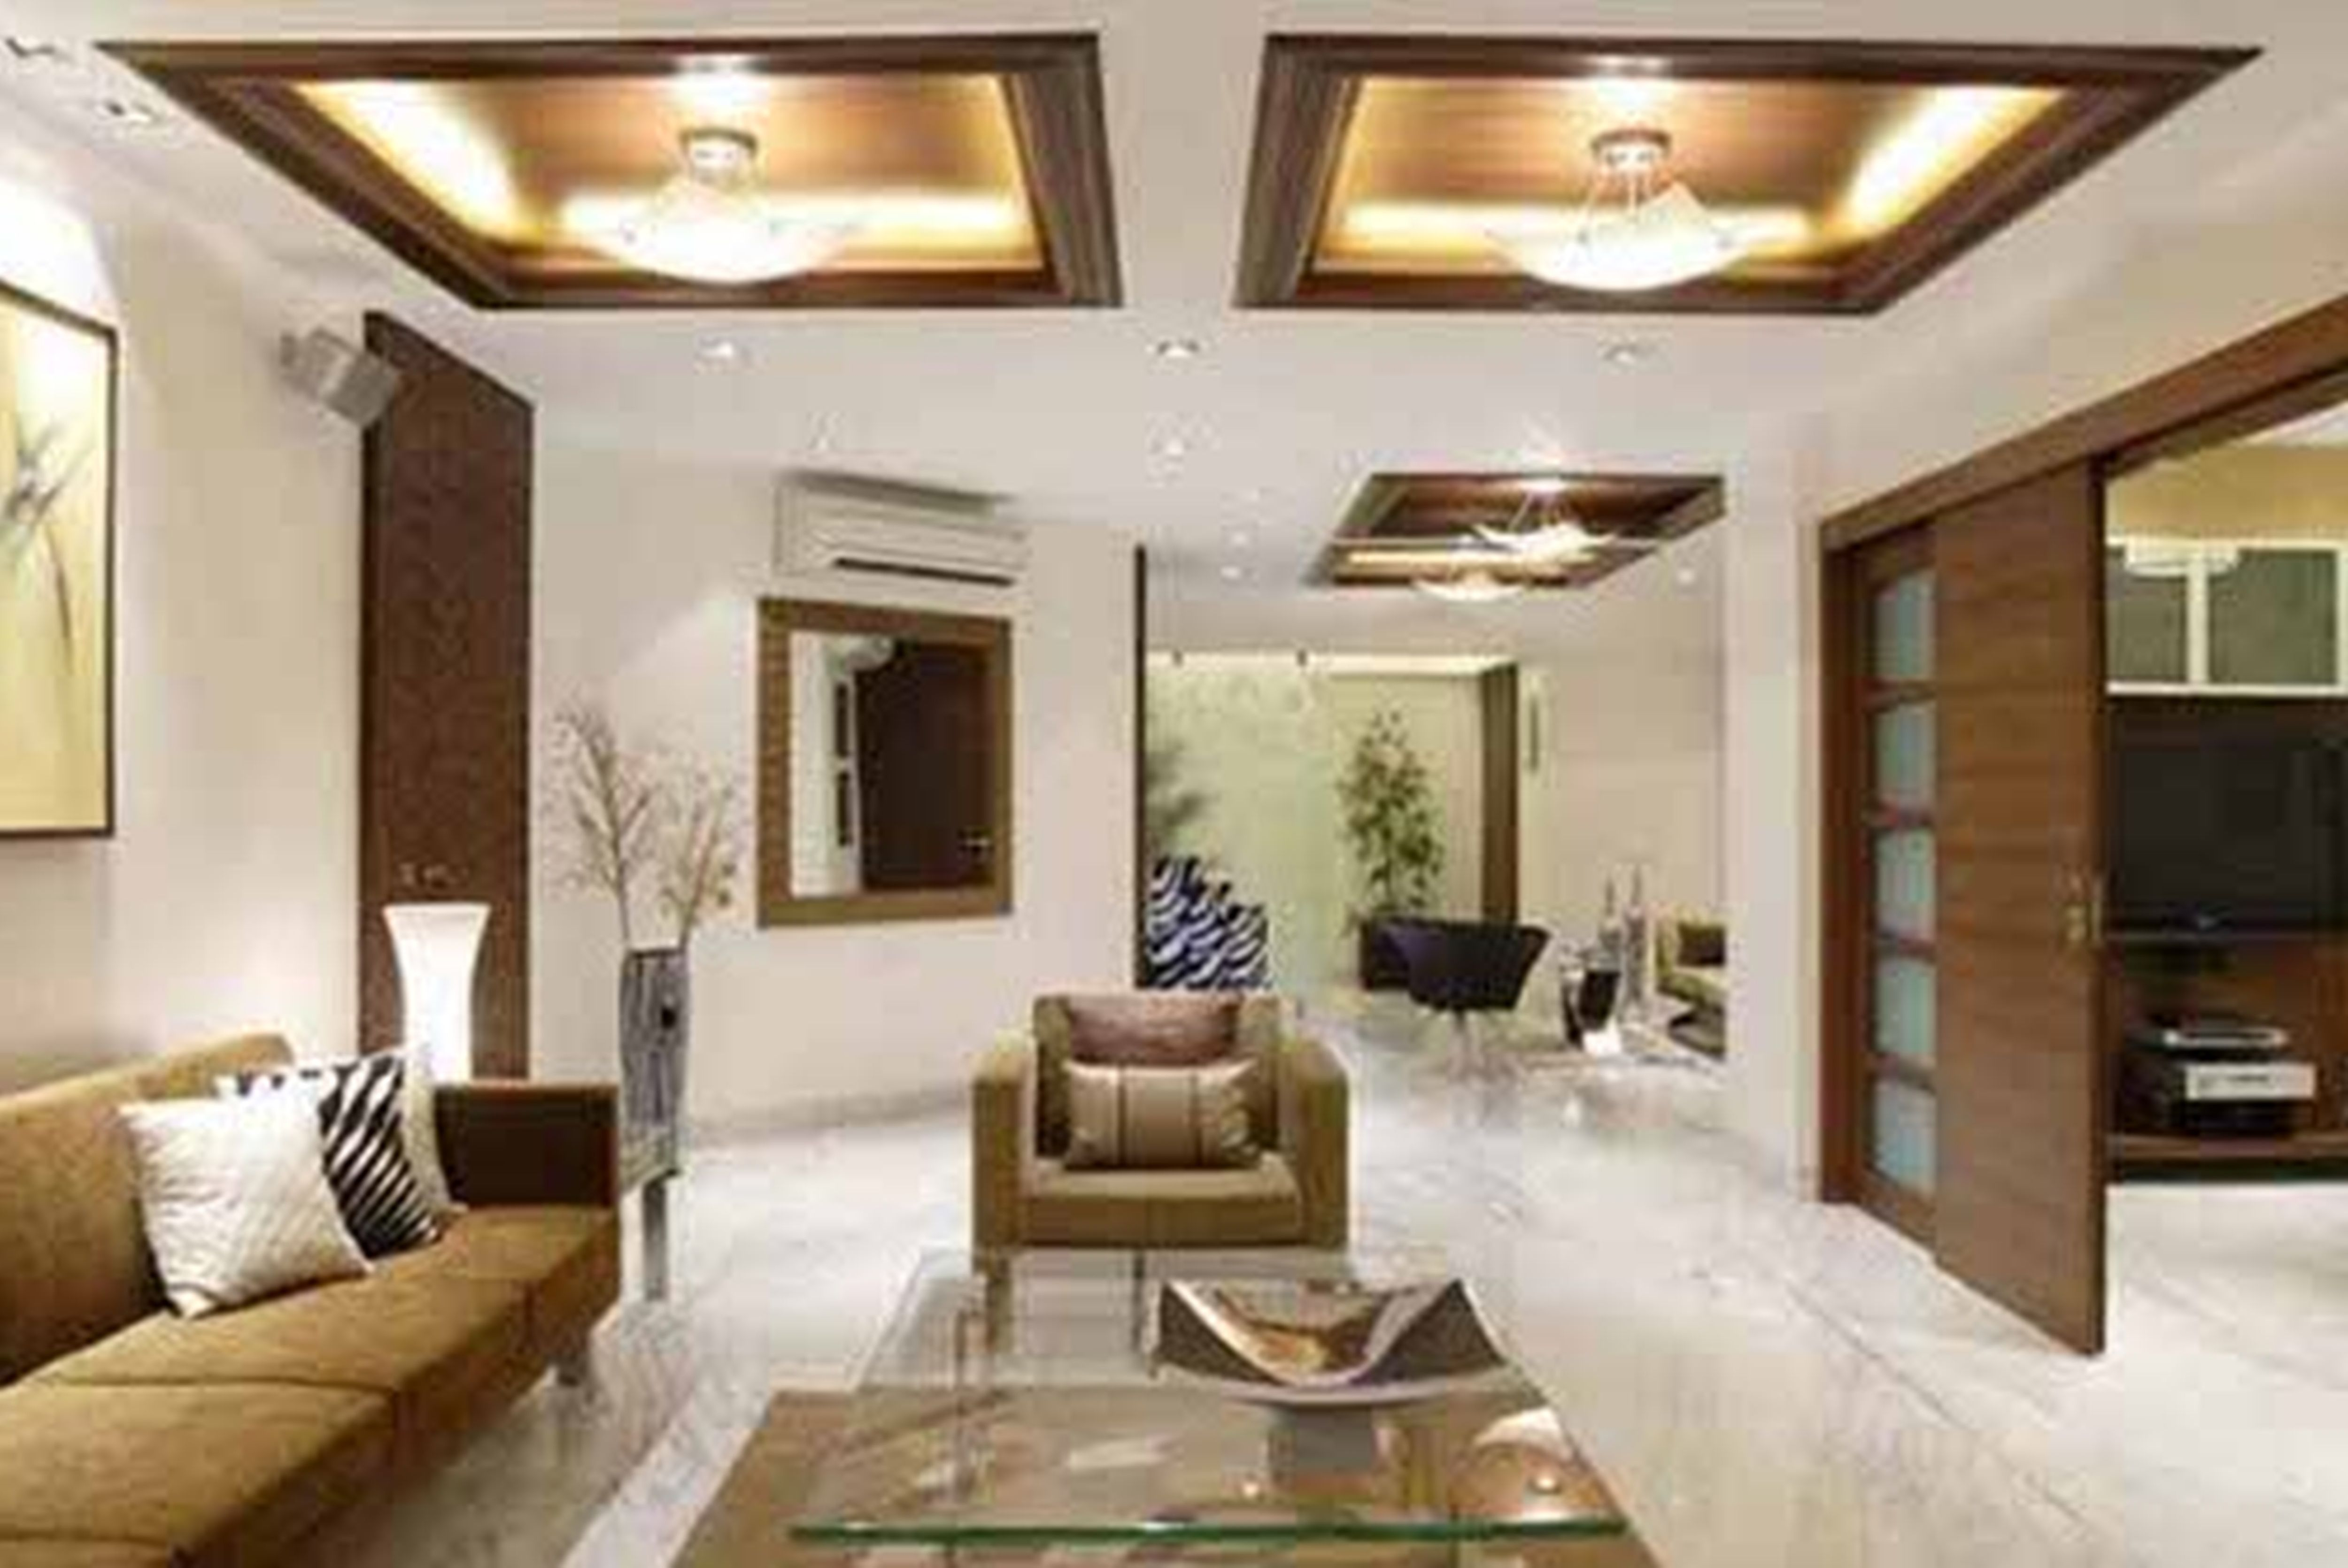 Affordable interior design ideas joy studio design House interior ideas